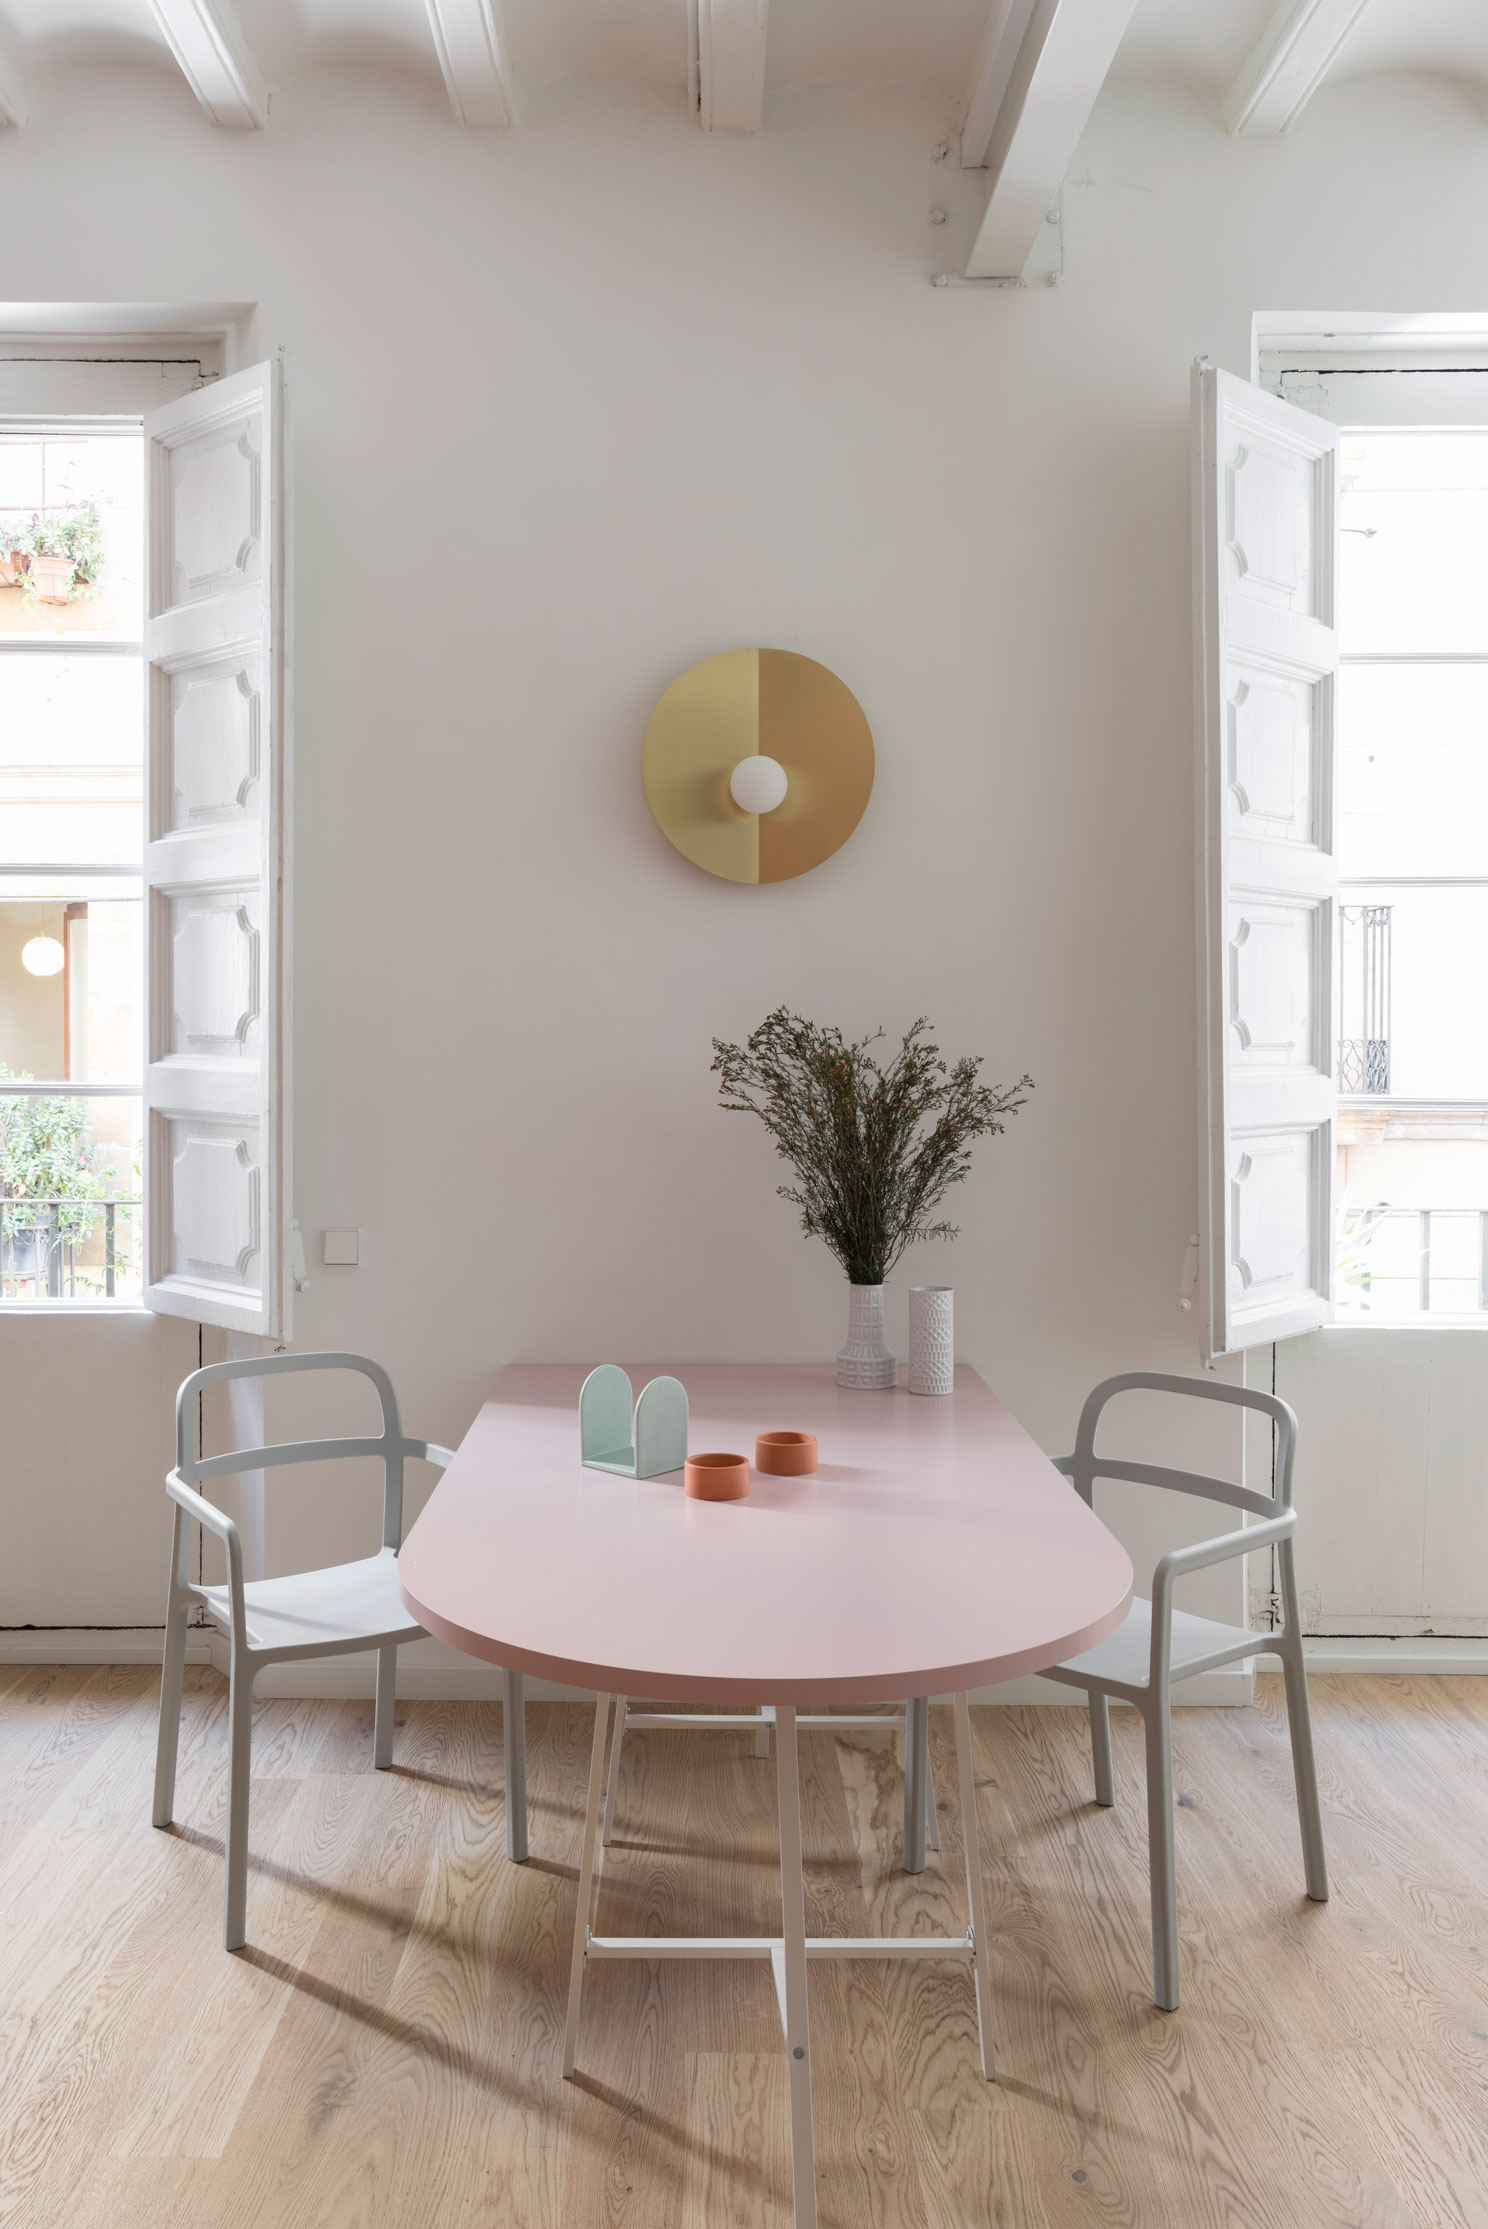 Between the two big windows, the golden disc of a Fold Lamp presides over the dining area. Designed by CaSA expressly for this project, the light is produced by Barcelona brand Metalware.  Below it, a wide table lacquered in pink, is flanked by Ypperlig chairs by HAY for IKEA.